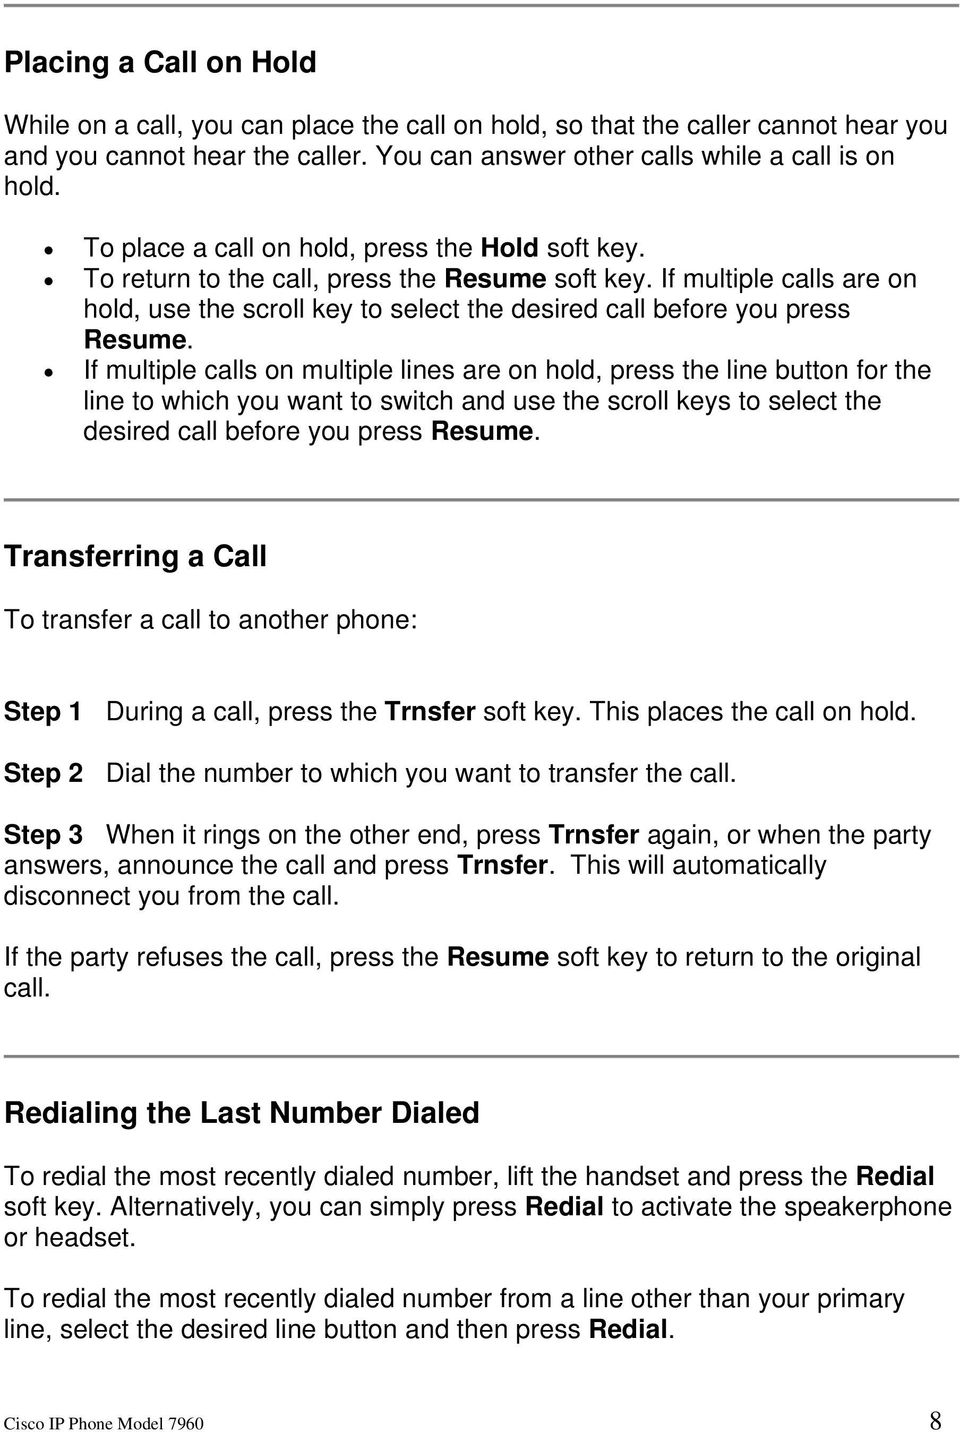 If multiple calls are on hold, use the scroll key to select the desired call before you press Resume.